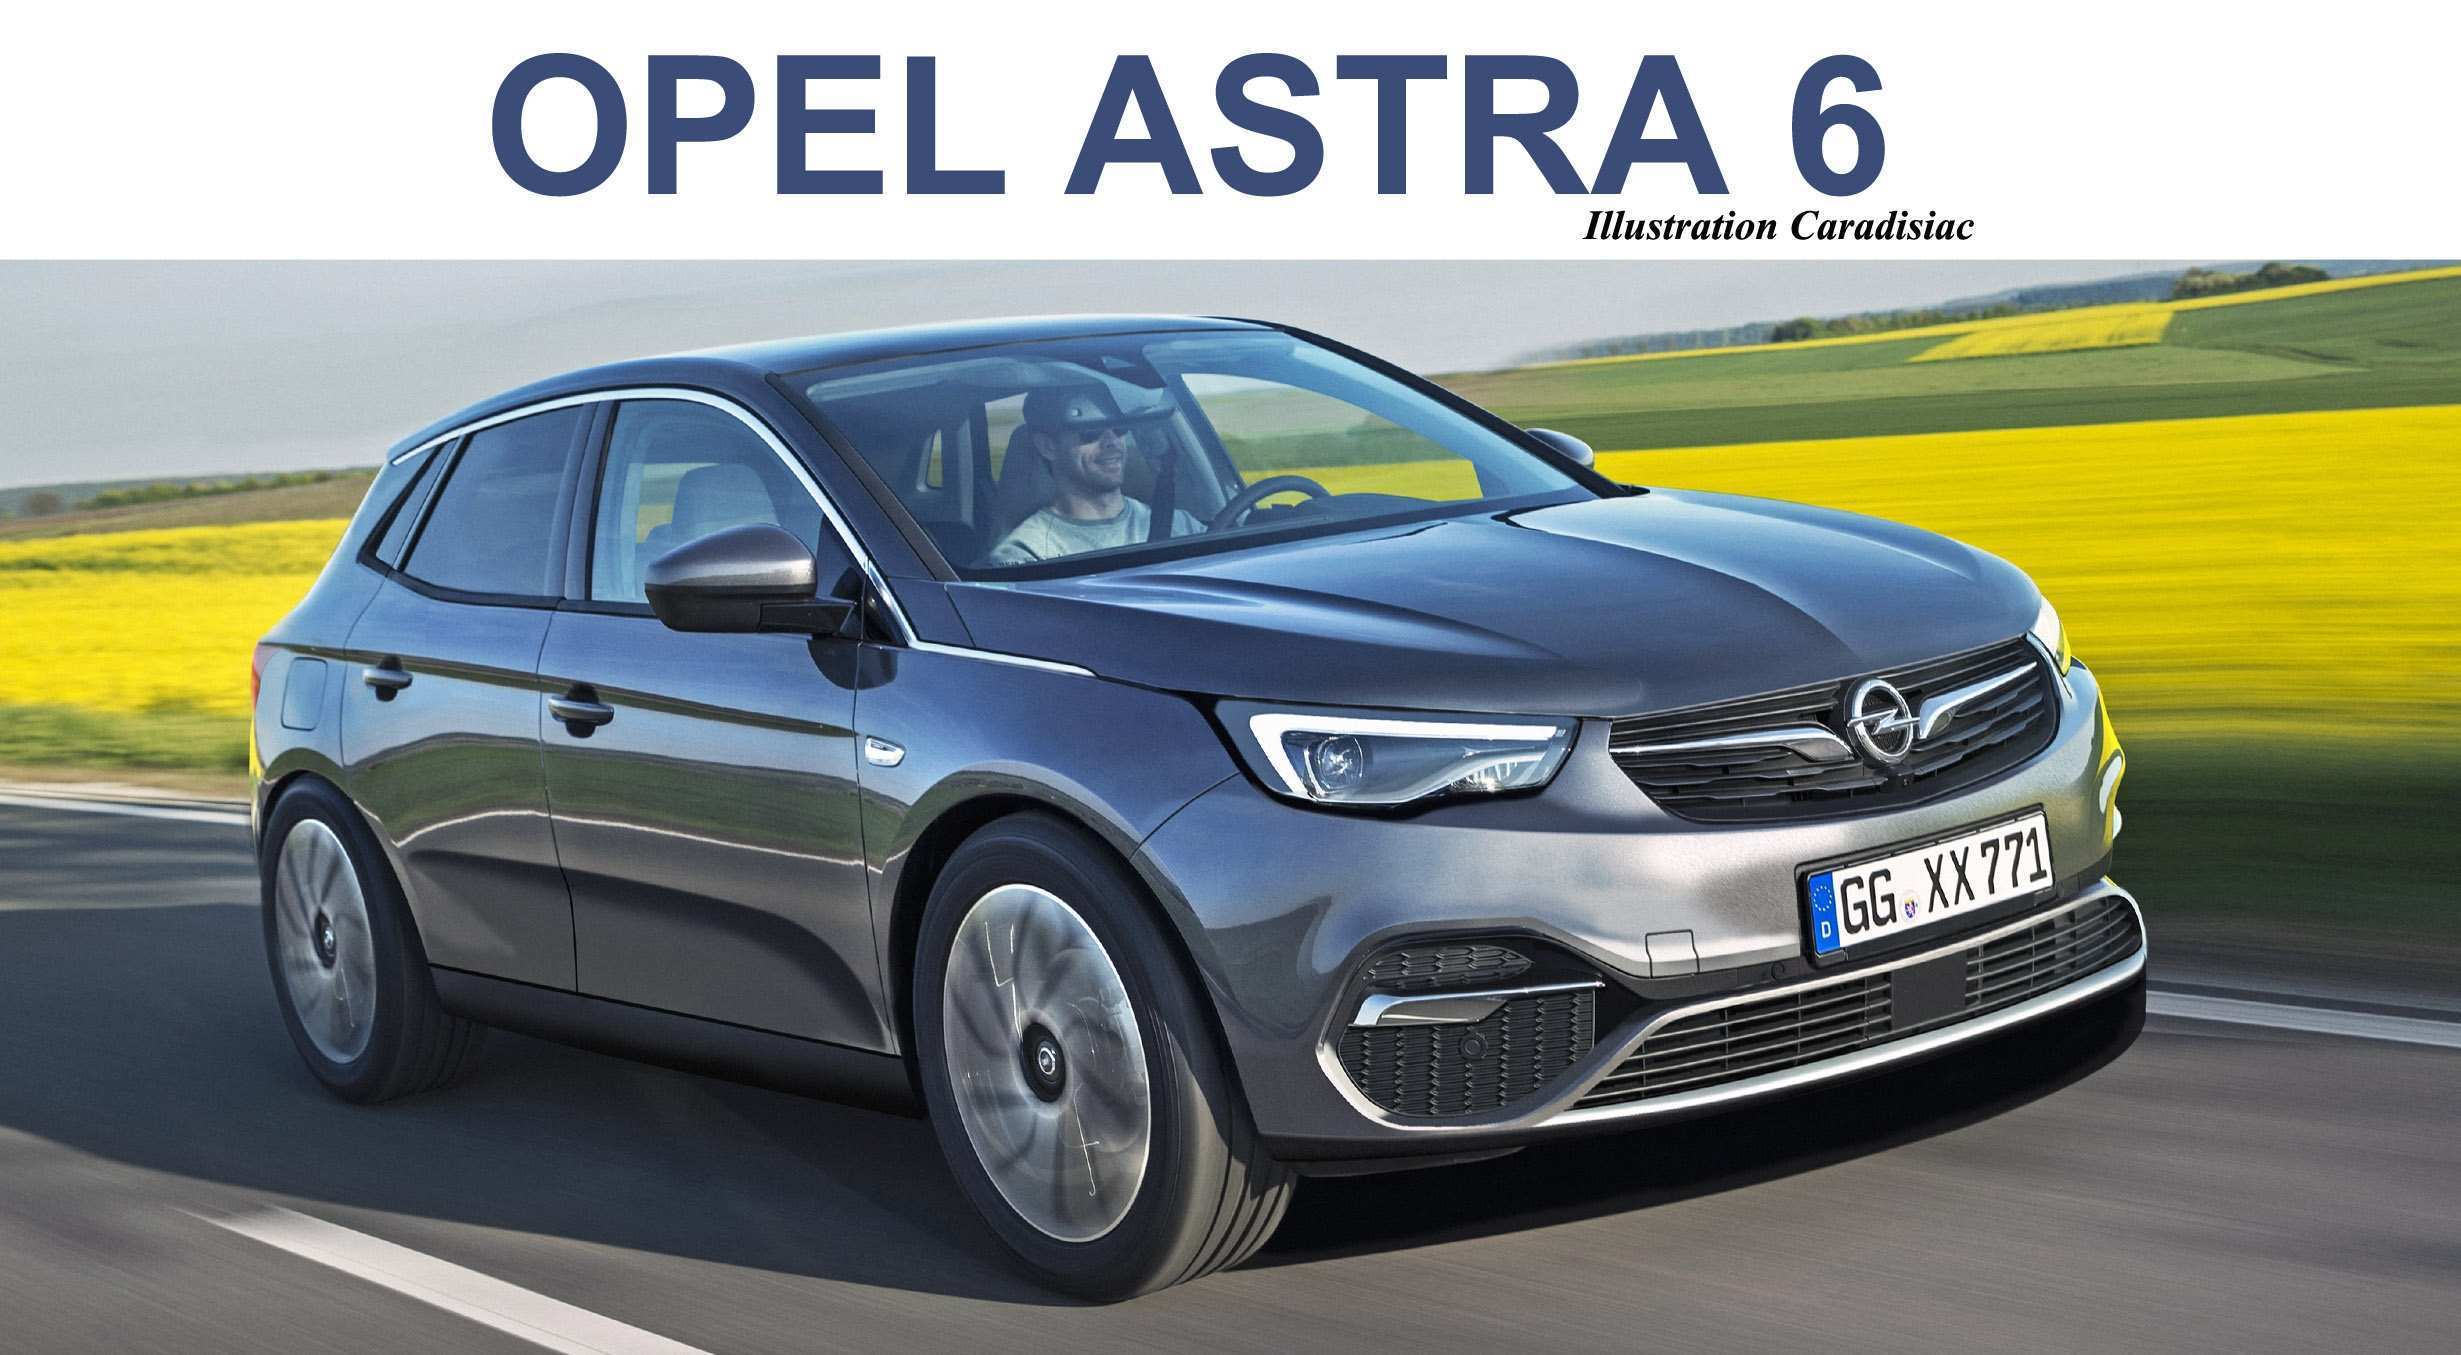 29 New Opel Corsa 2019 Psa Specs and Review with Opel Corsa 2019 Psa